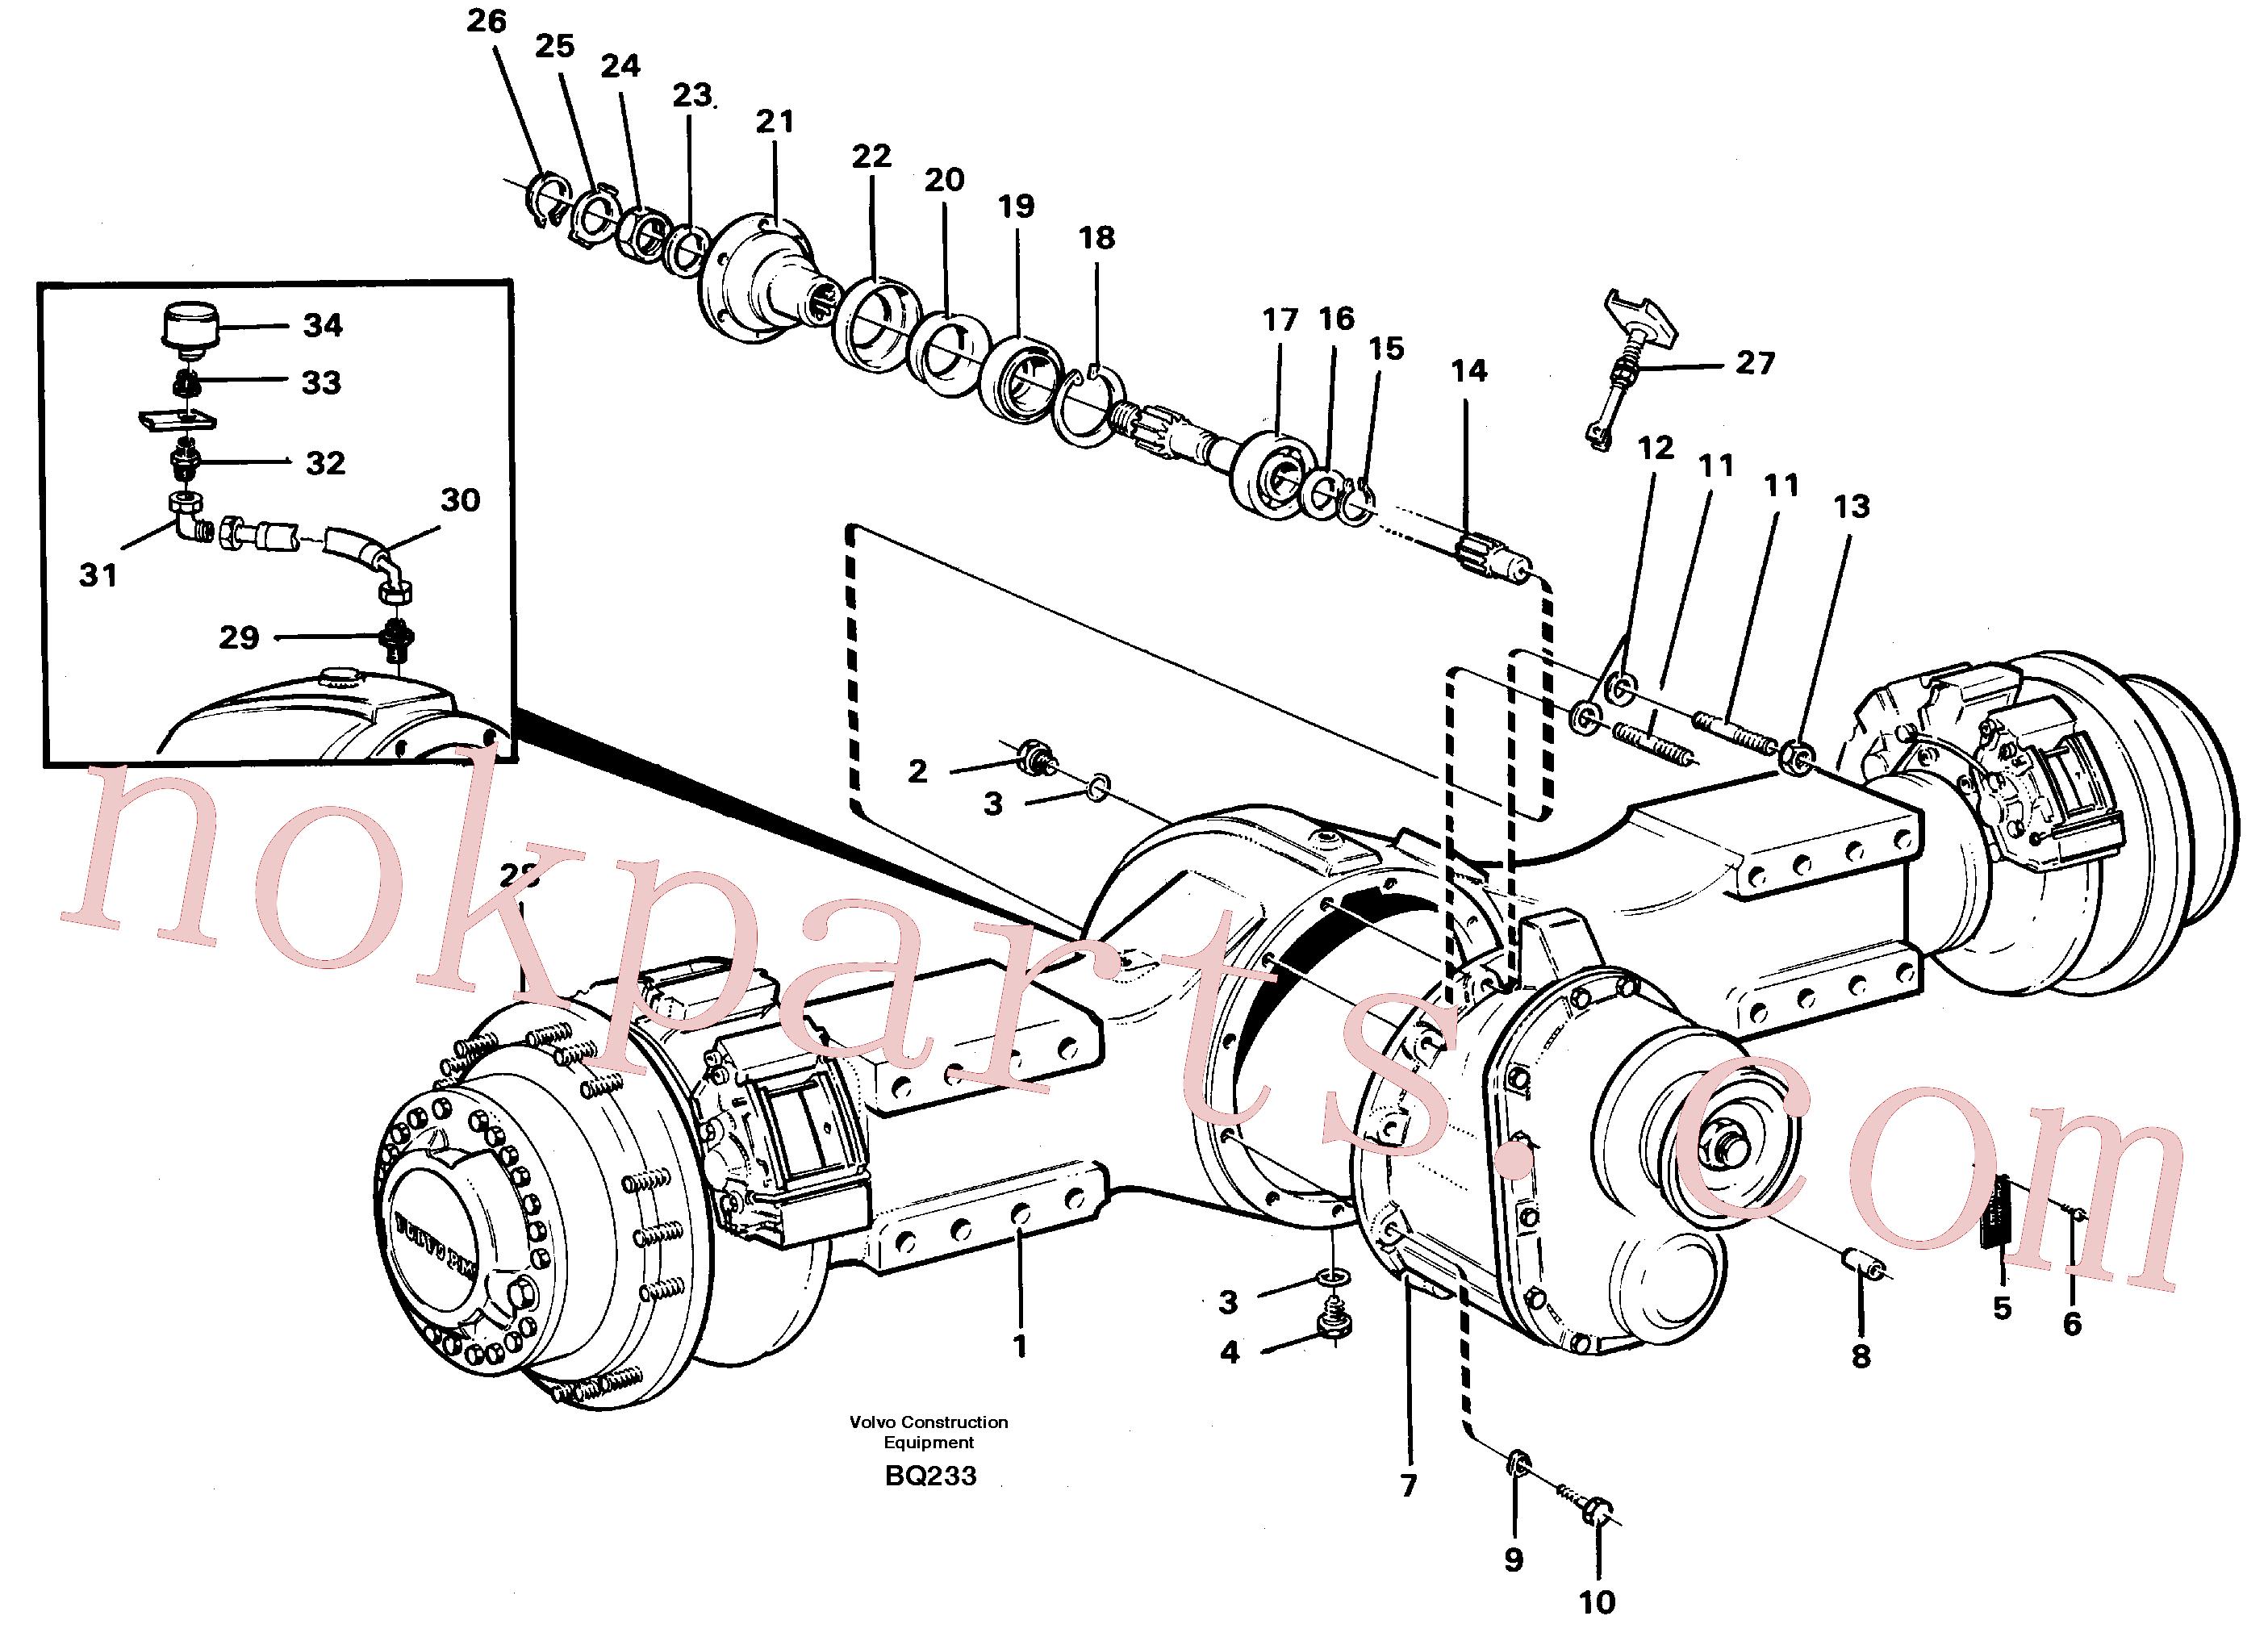 VOE383992 for Volvo Planetary axle, axle 1 load unit(BQ233 assembly)